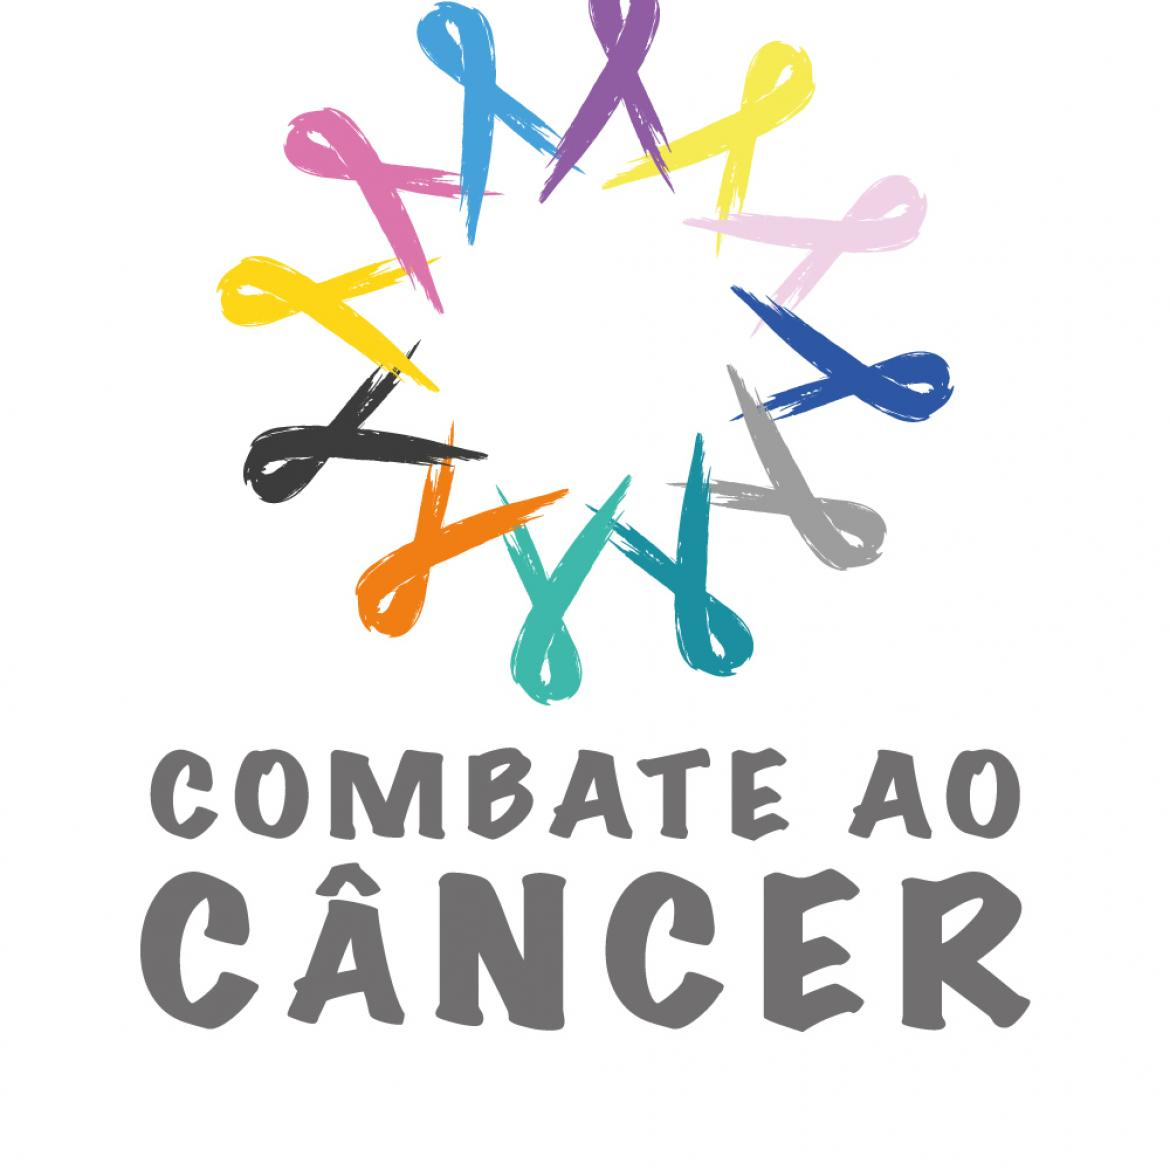 http://www.4newsmagazine.com.br/sites/default/files/0001-13-logo-combate-ao-cancer-vertical.jpg